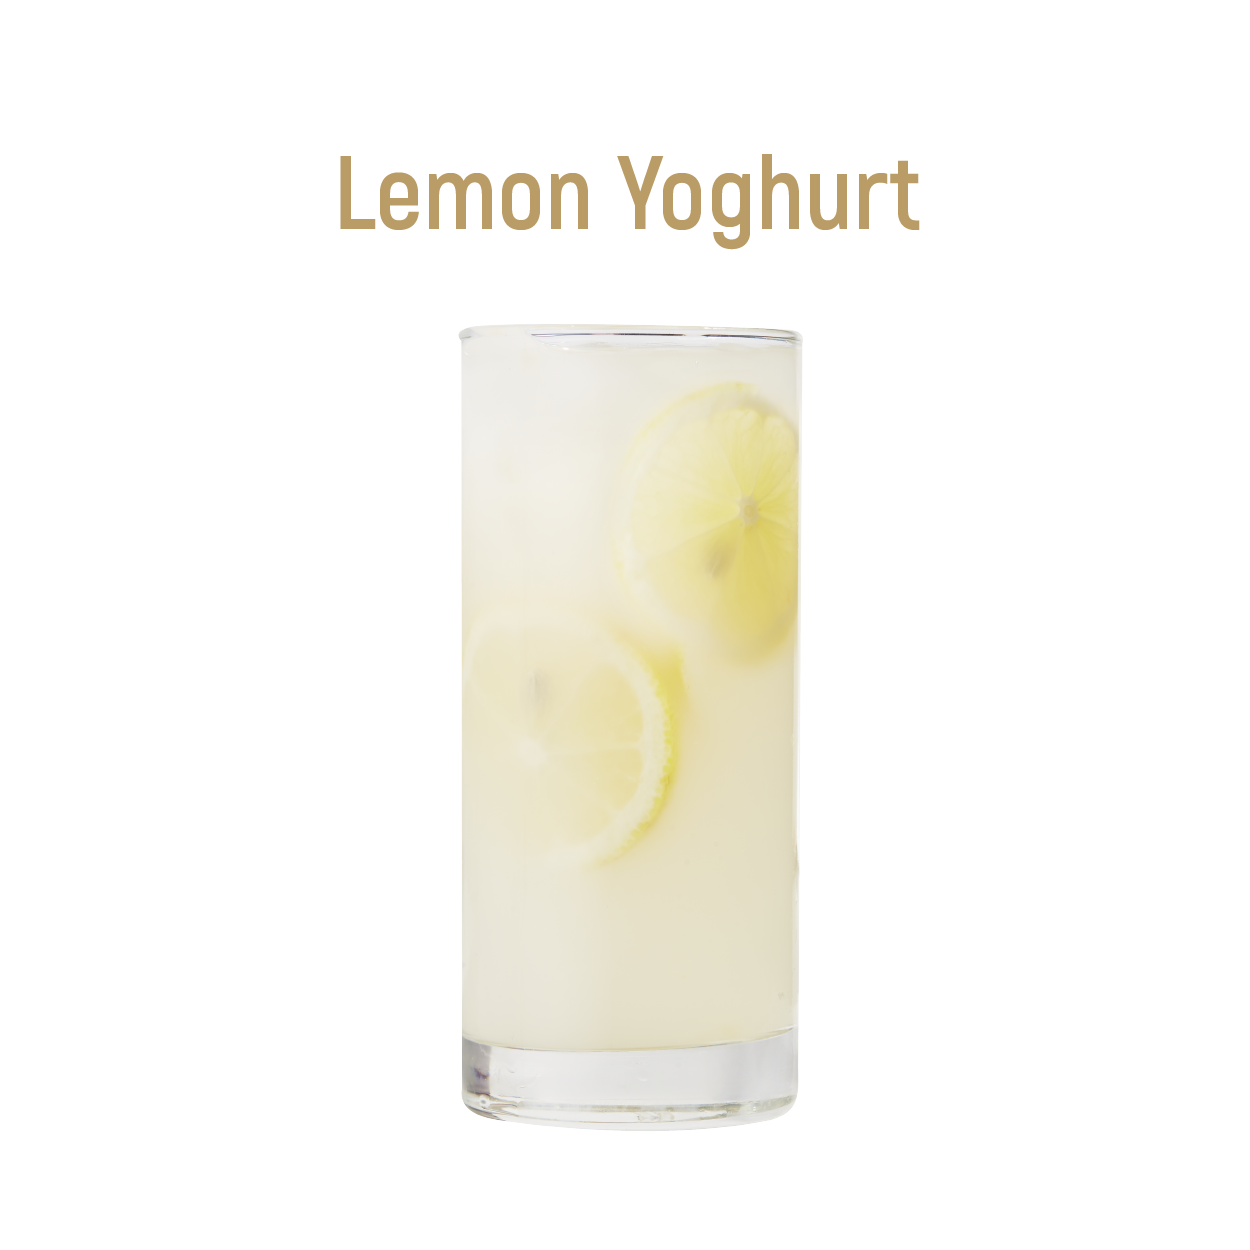 Lemon copy_Lemon Yoghurt.png